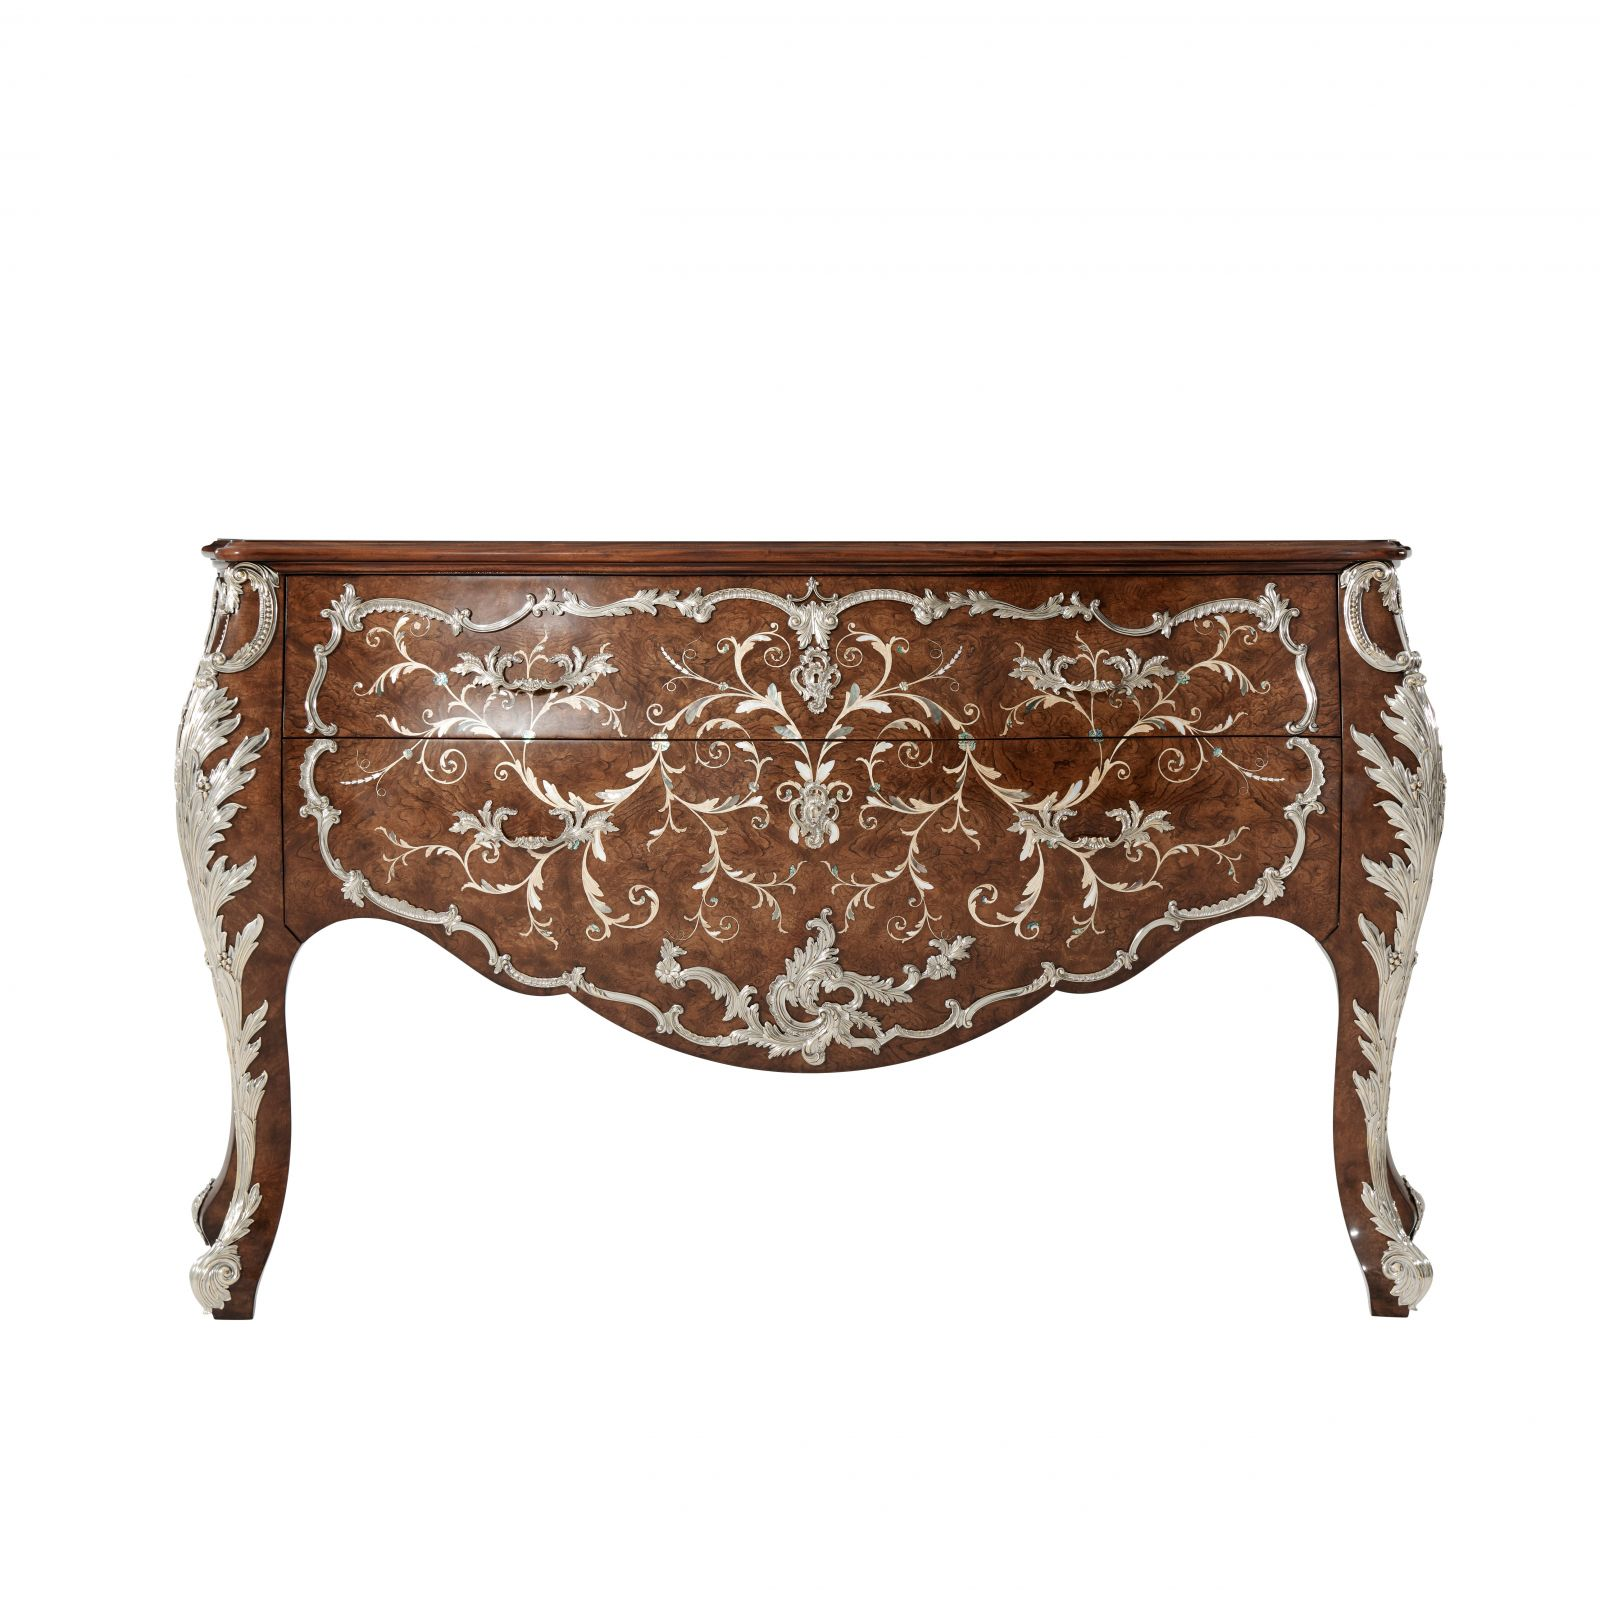 Anglian finish mahogany, chestnut veneered and marquetry bombé Commode